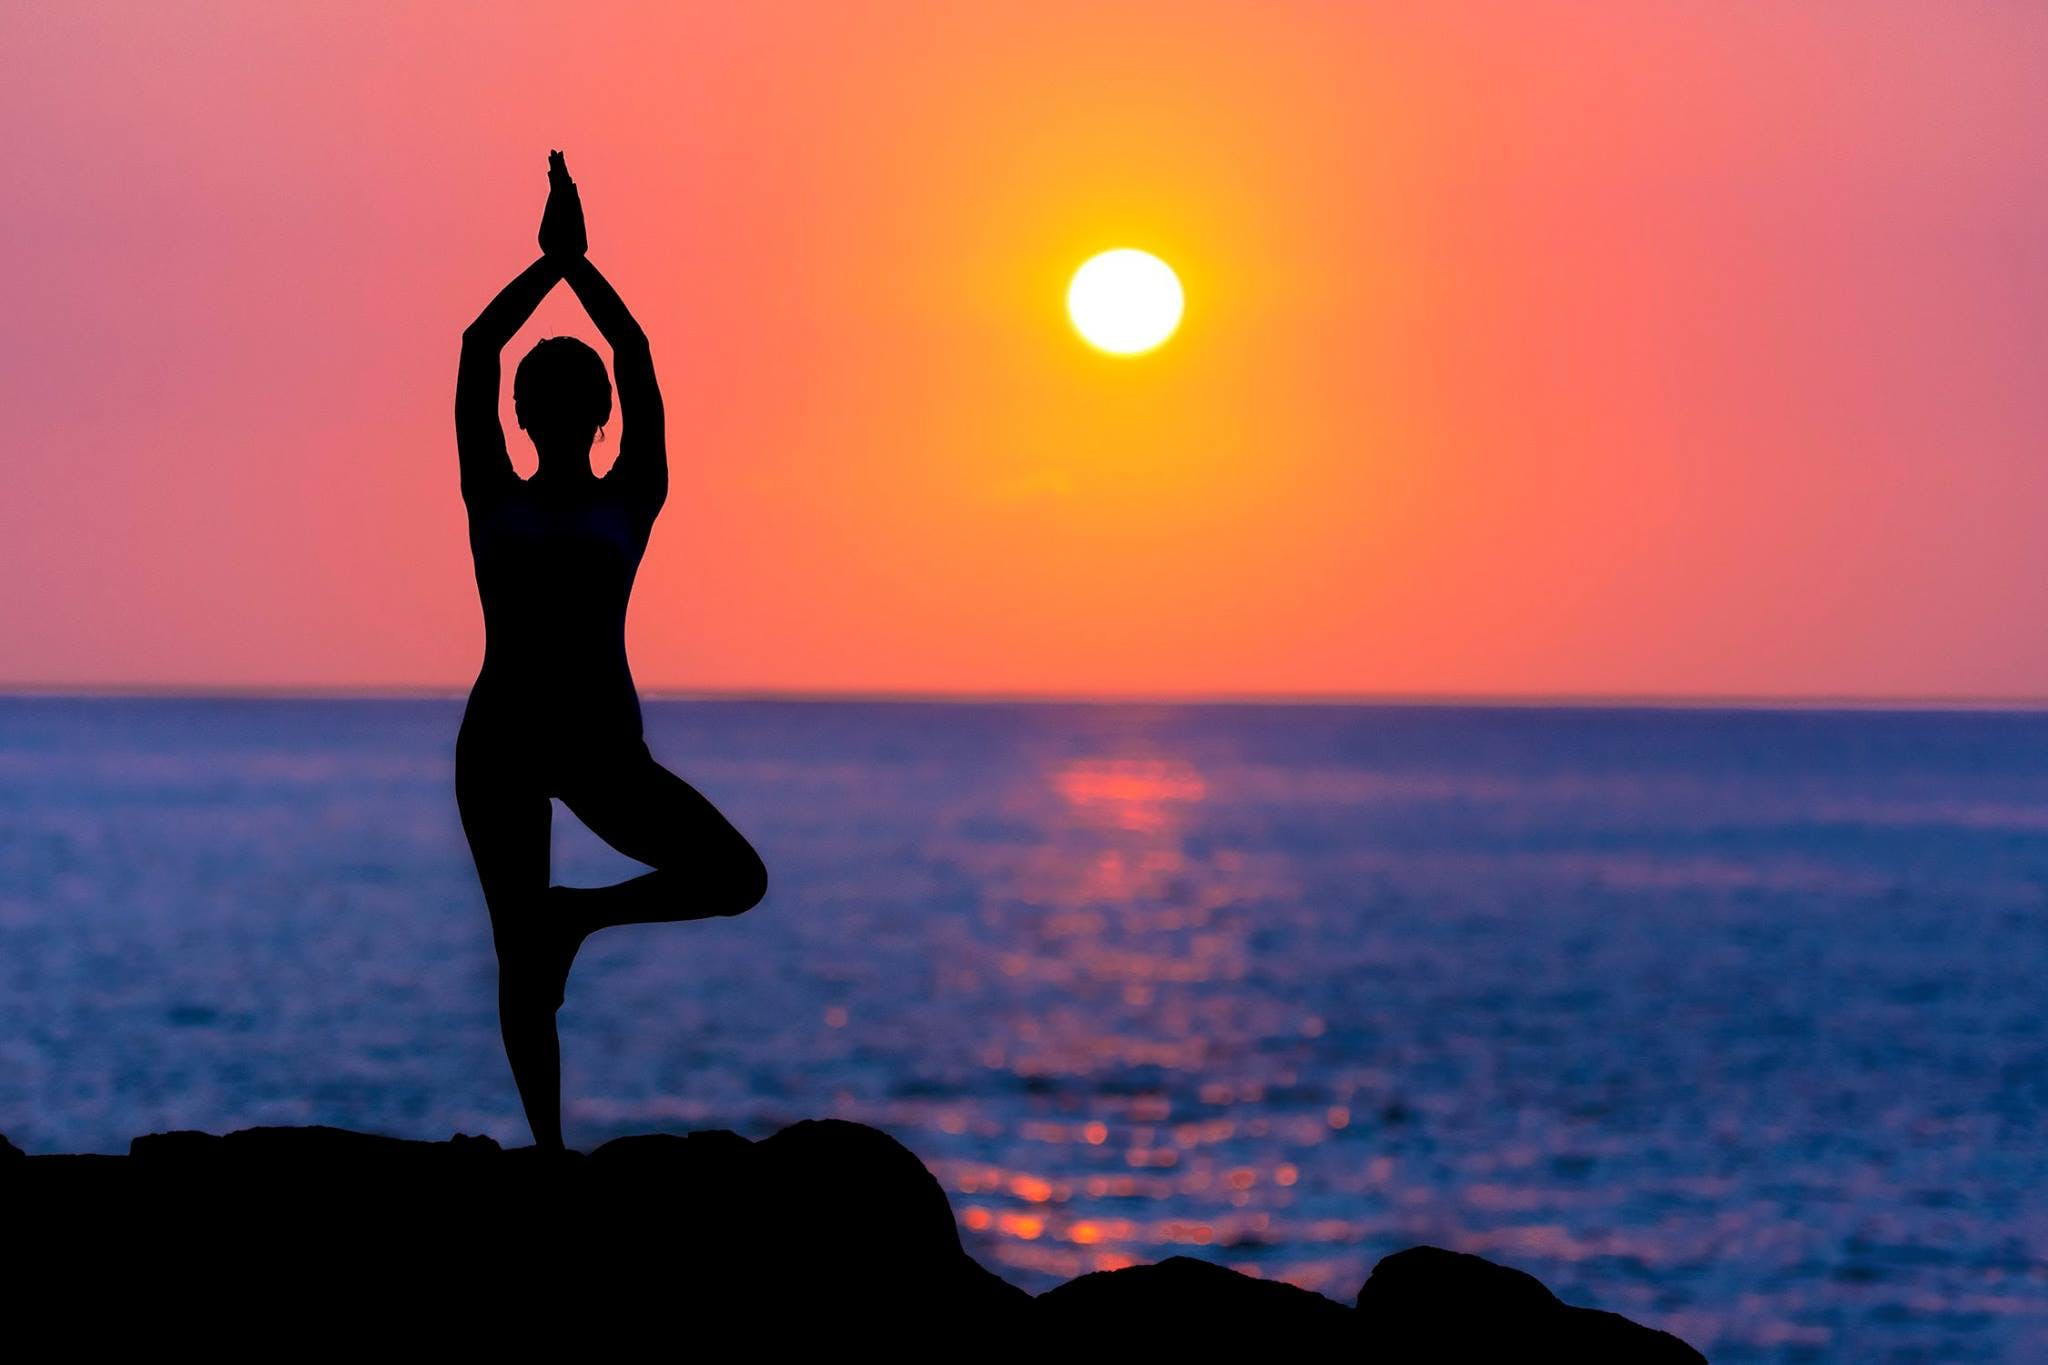 Silhouette of Person Doing Yoga Near Body of Water